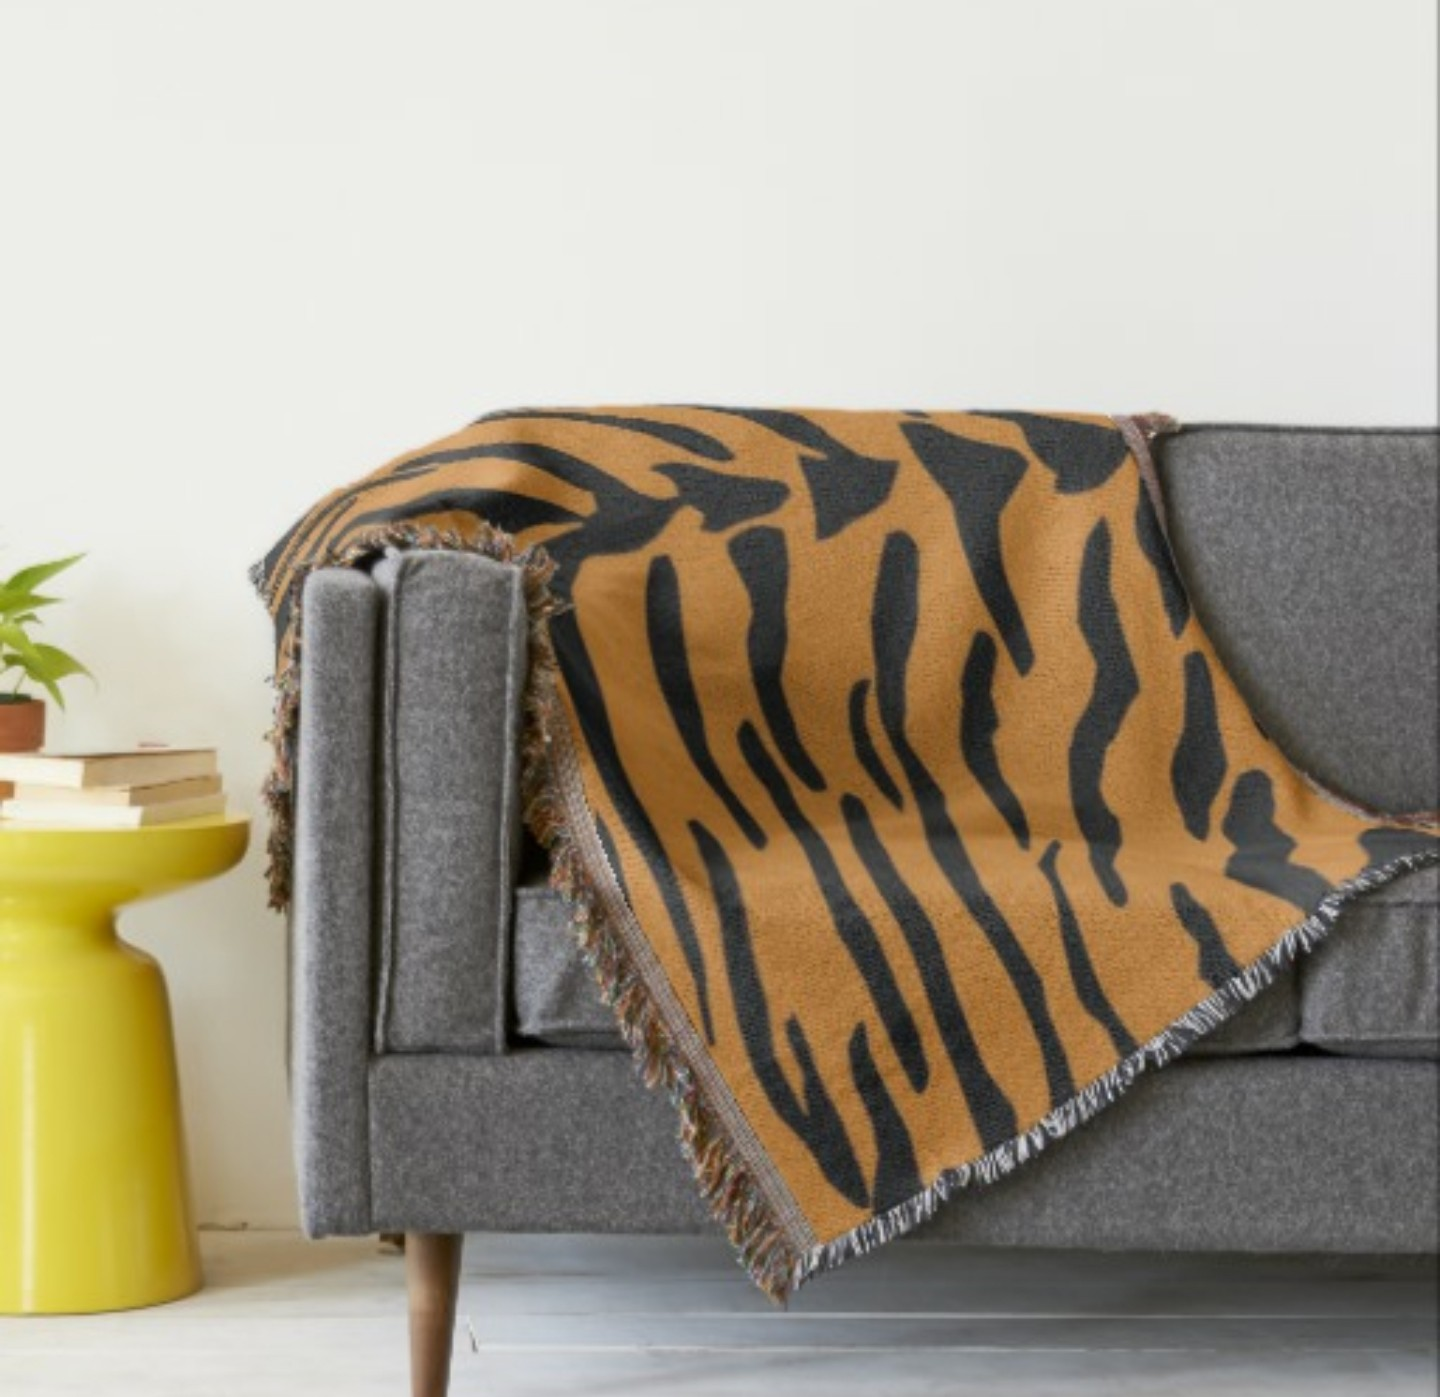 tiger print sofa set two piece sectional covers quotexoticskins quot skin throw blanket olheiser art